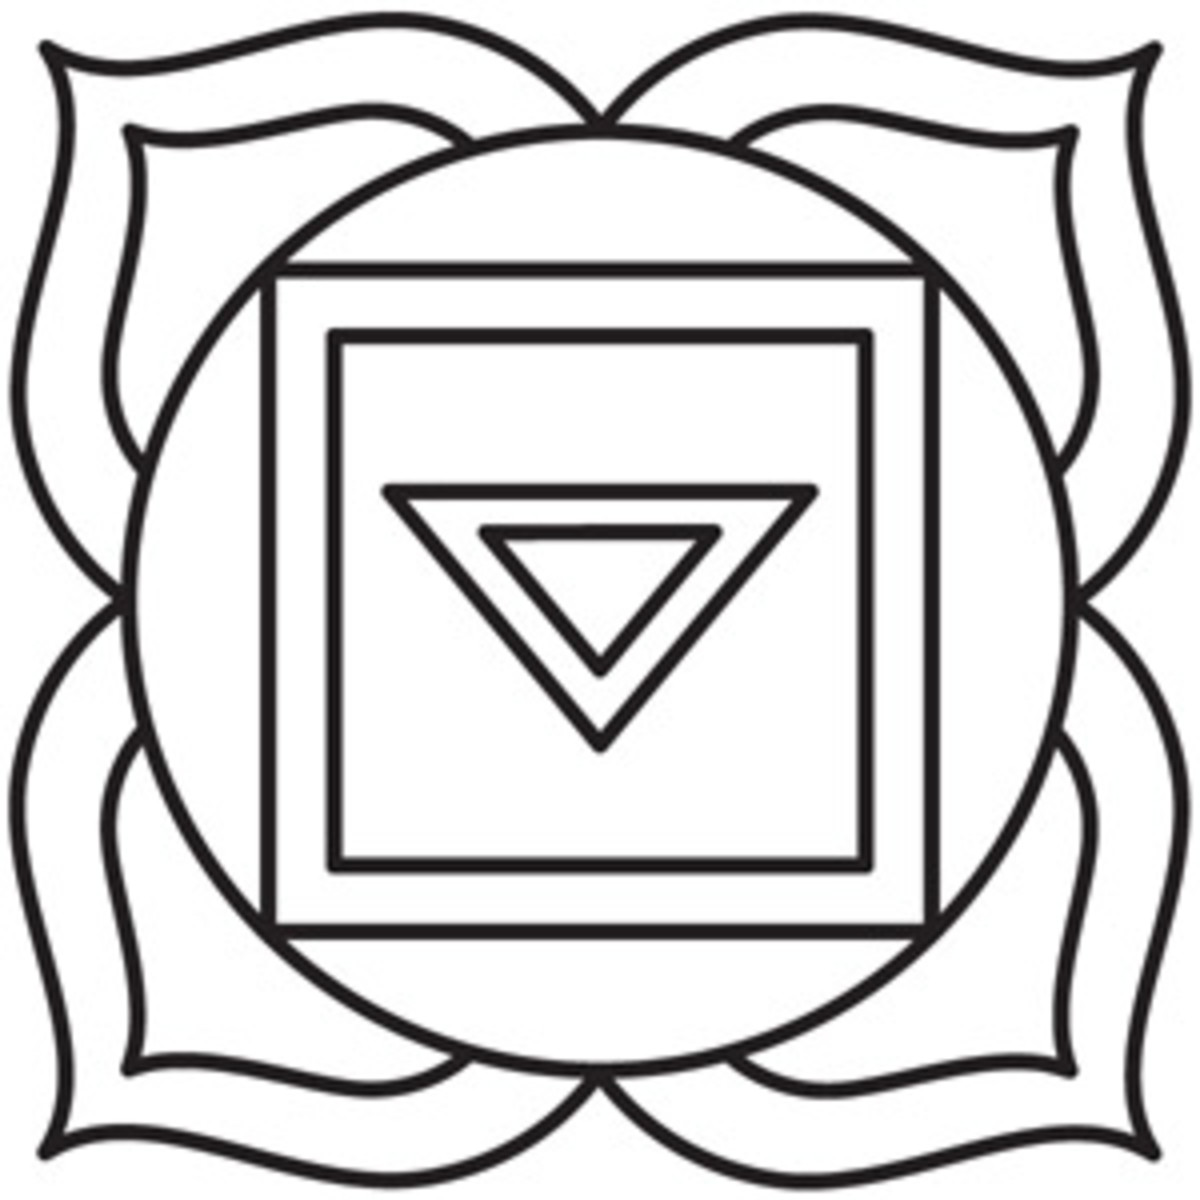 Base-of-the-Spine Chakra Symbol